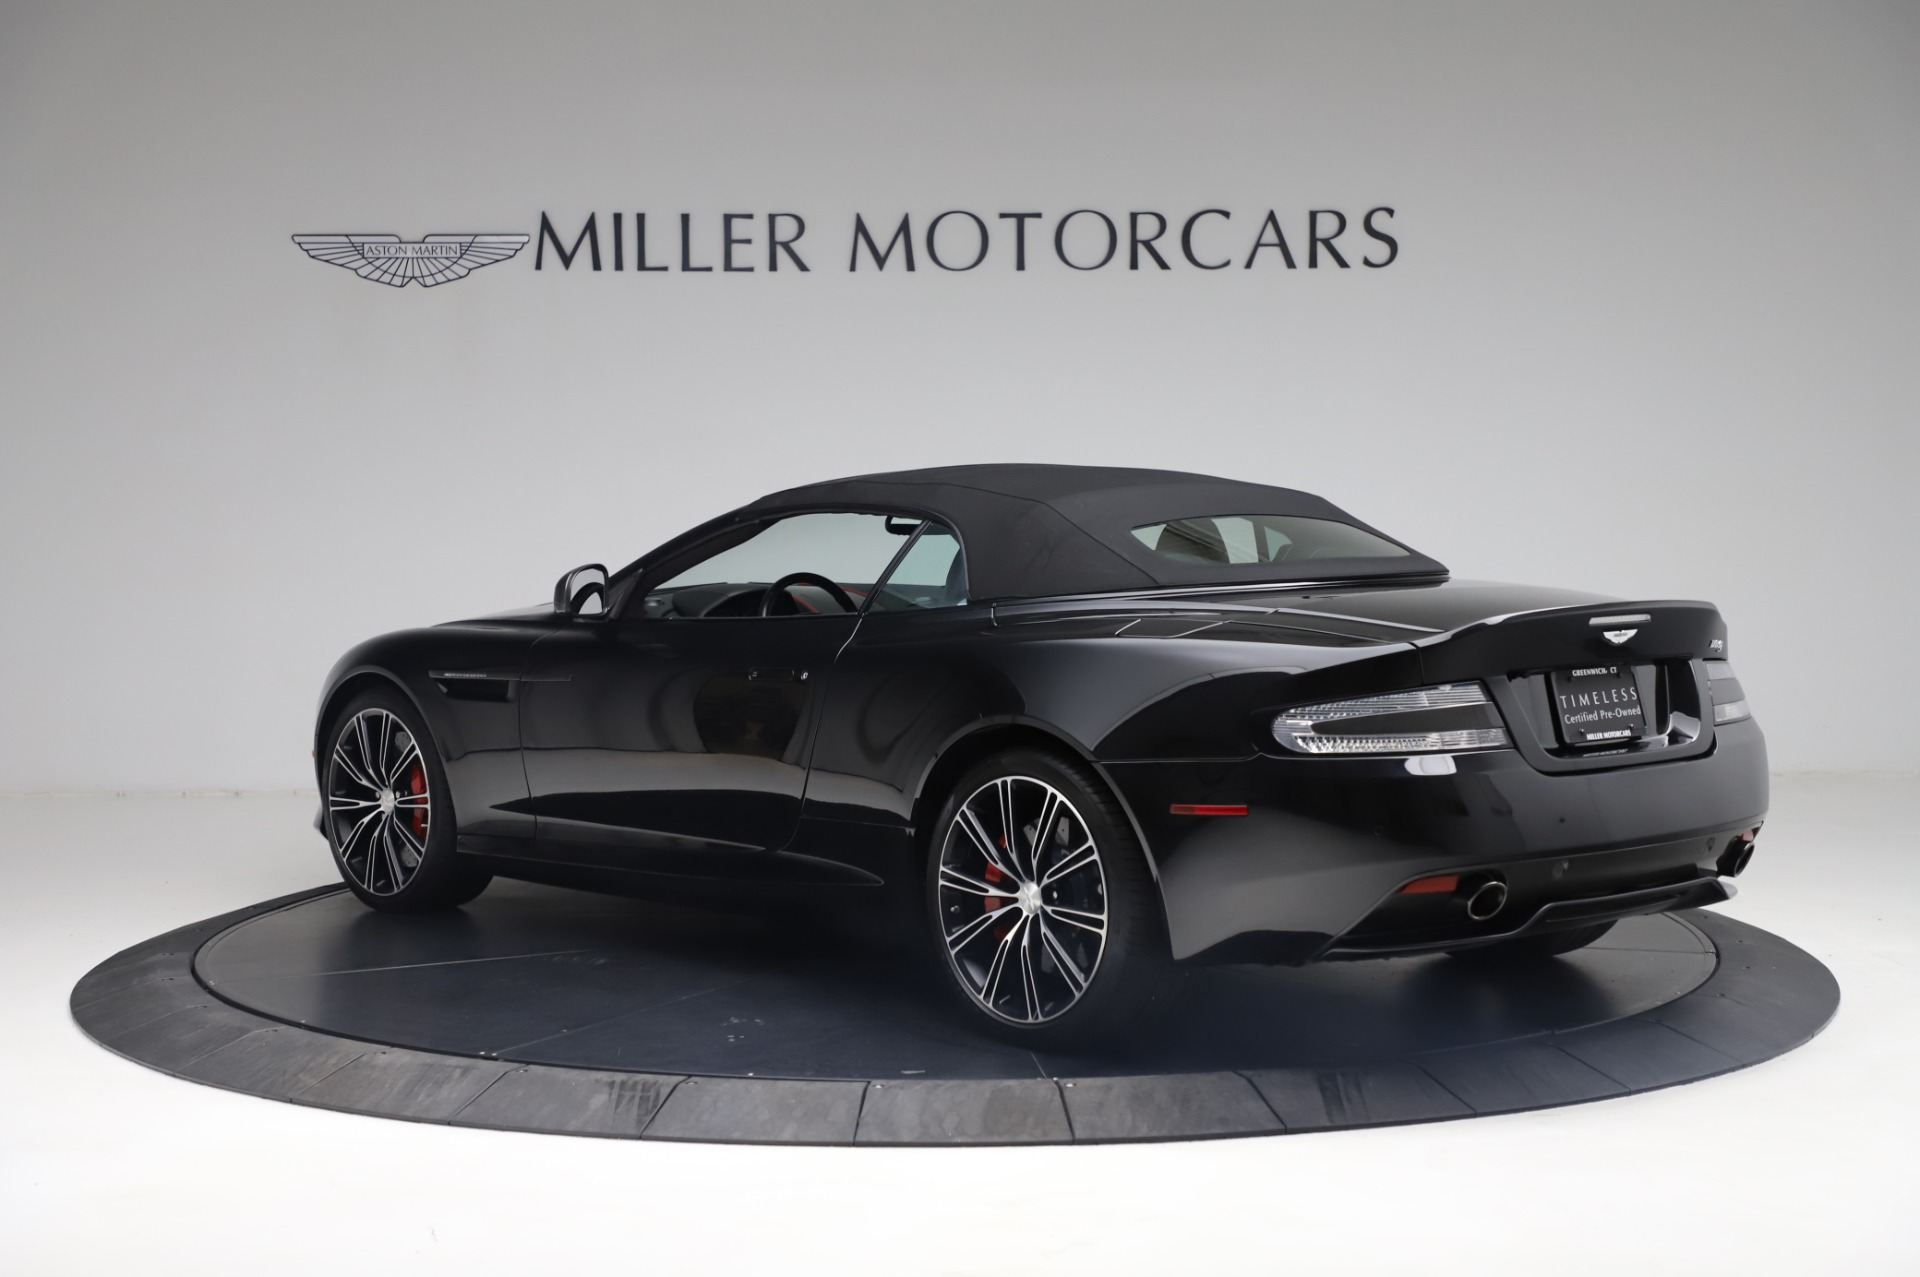 Used 2015 Aston Martin DB9 Carbon Edition Volante For Sale In Westport, CT 1919_p15